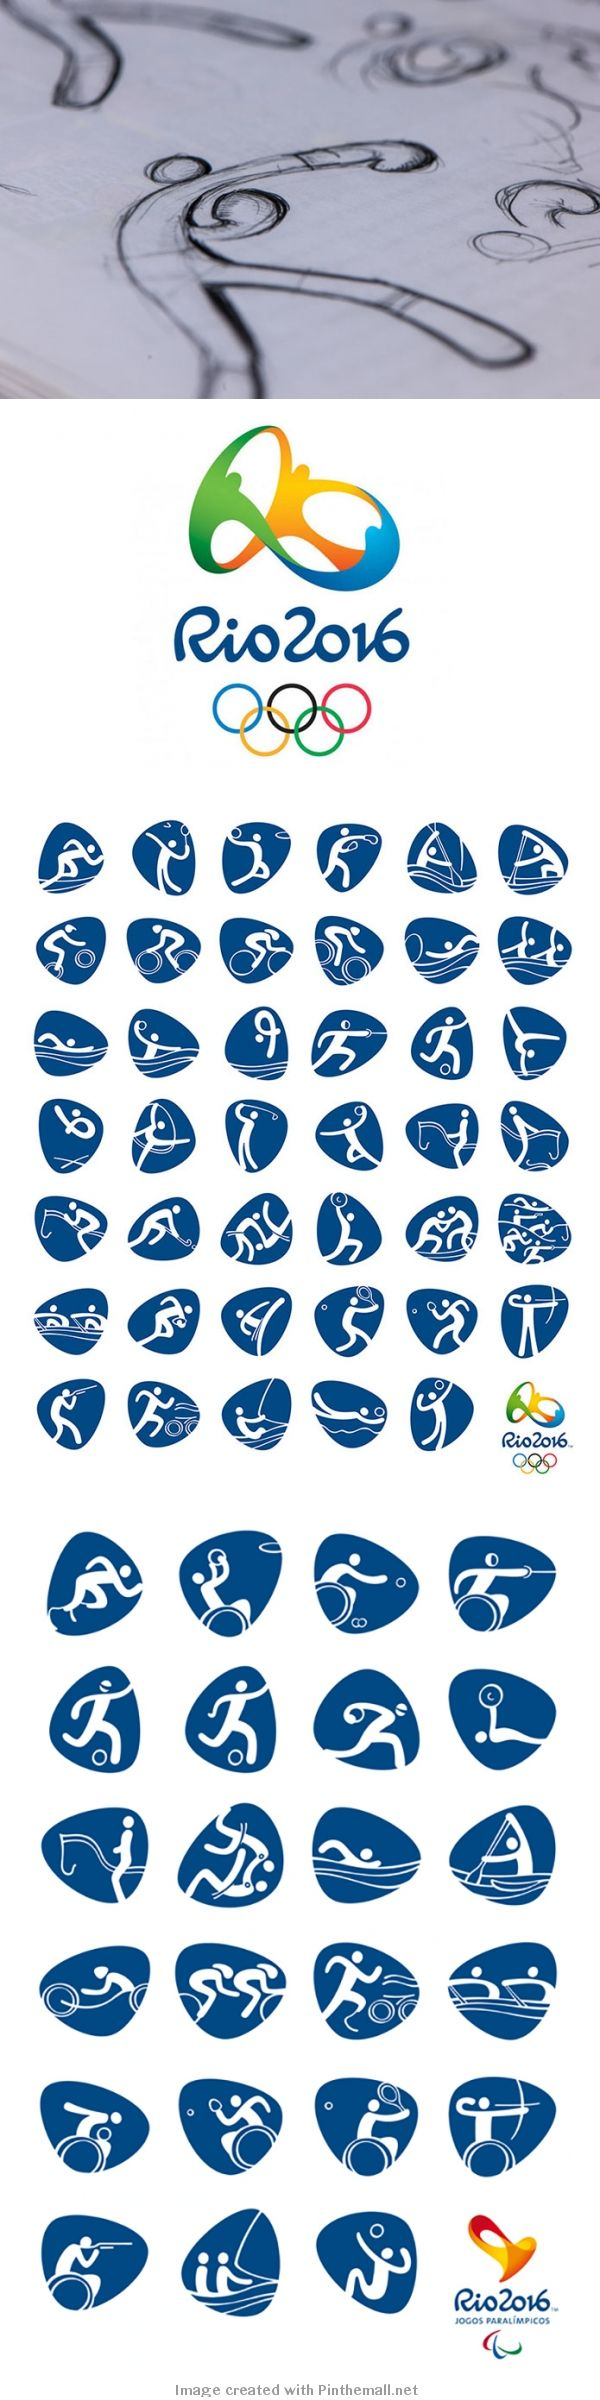 Rio 2016 in-house team – Olympic Pictograms for Rio 2016